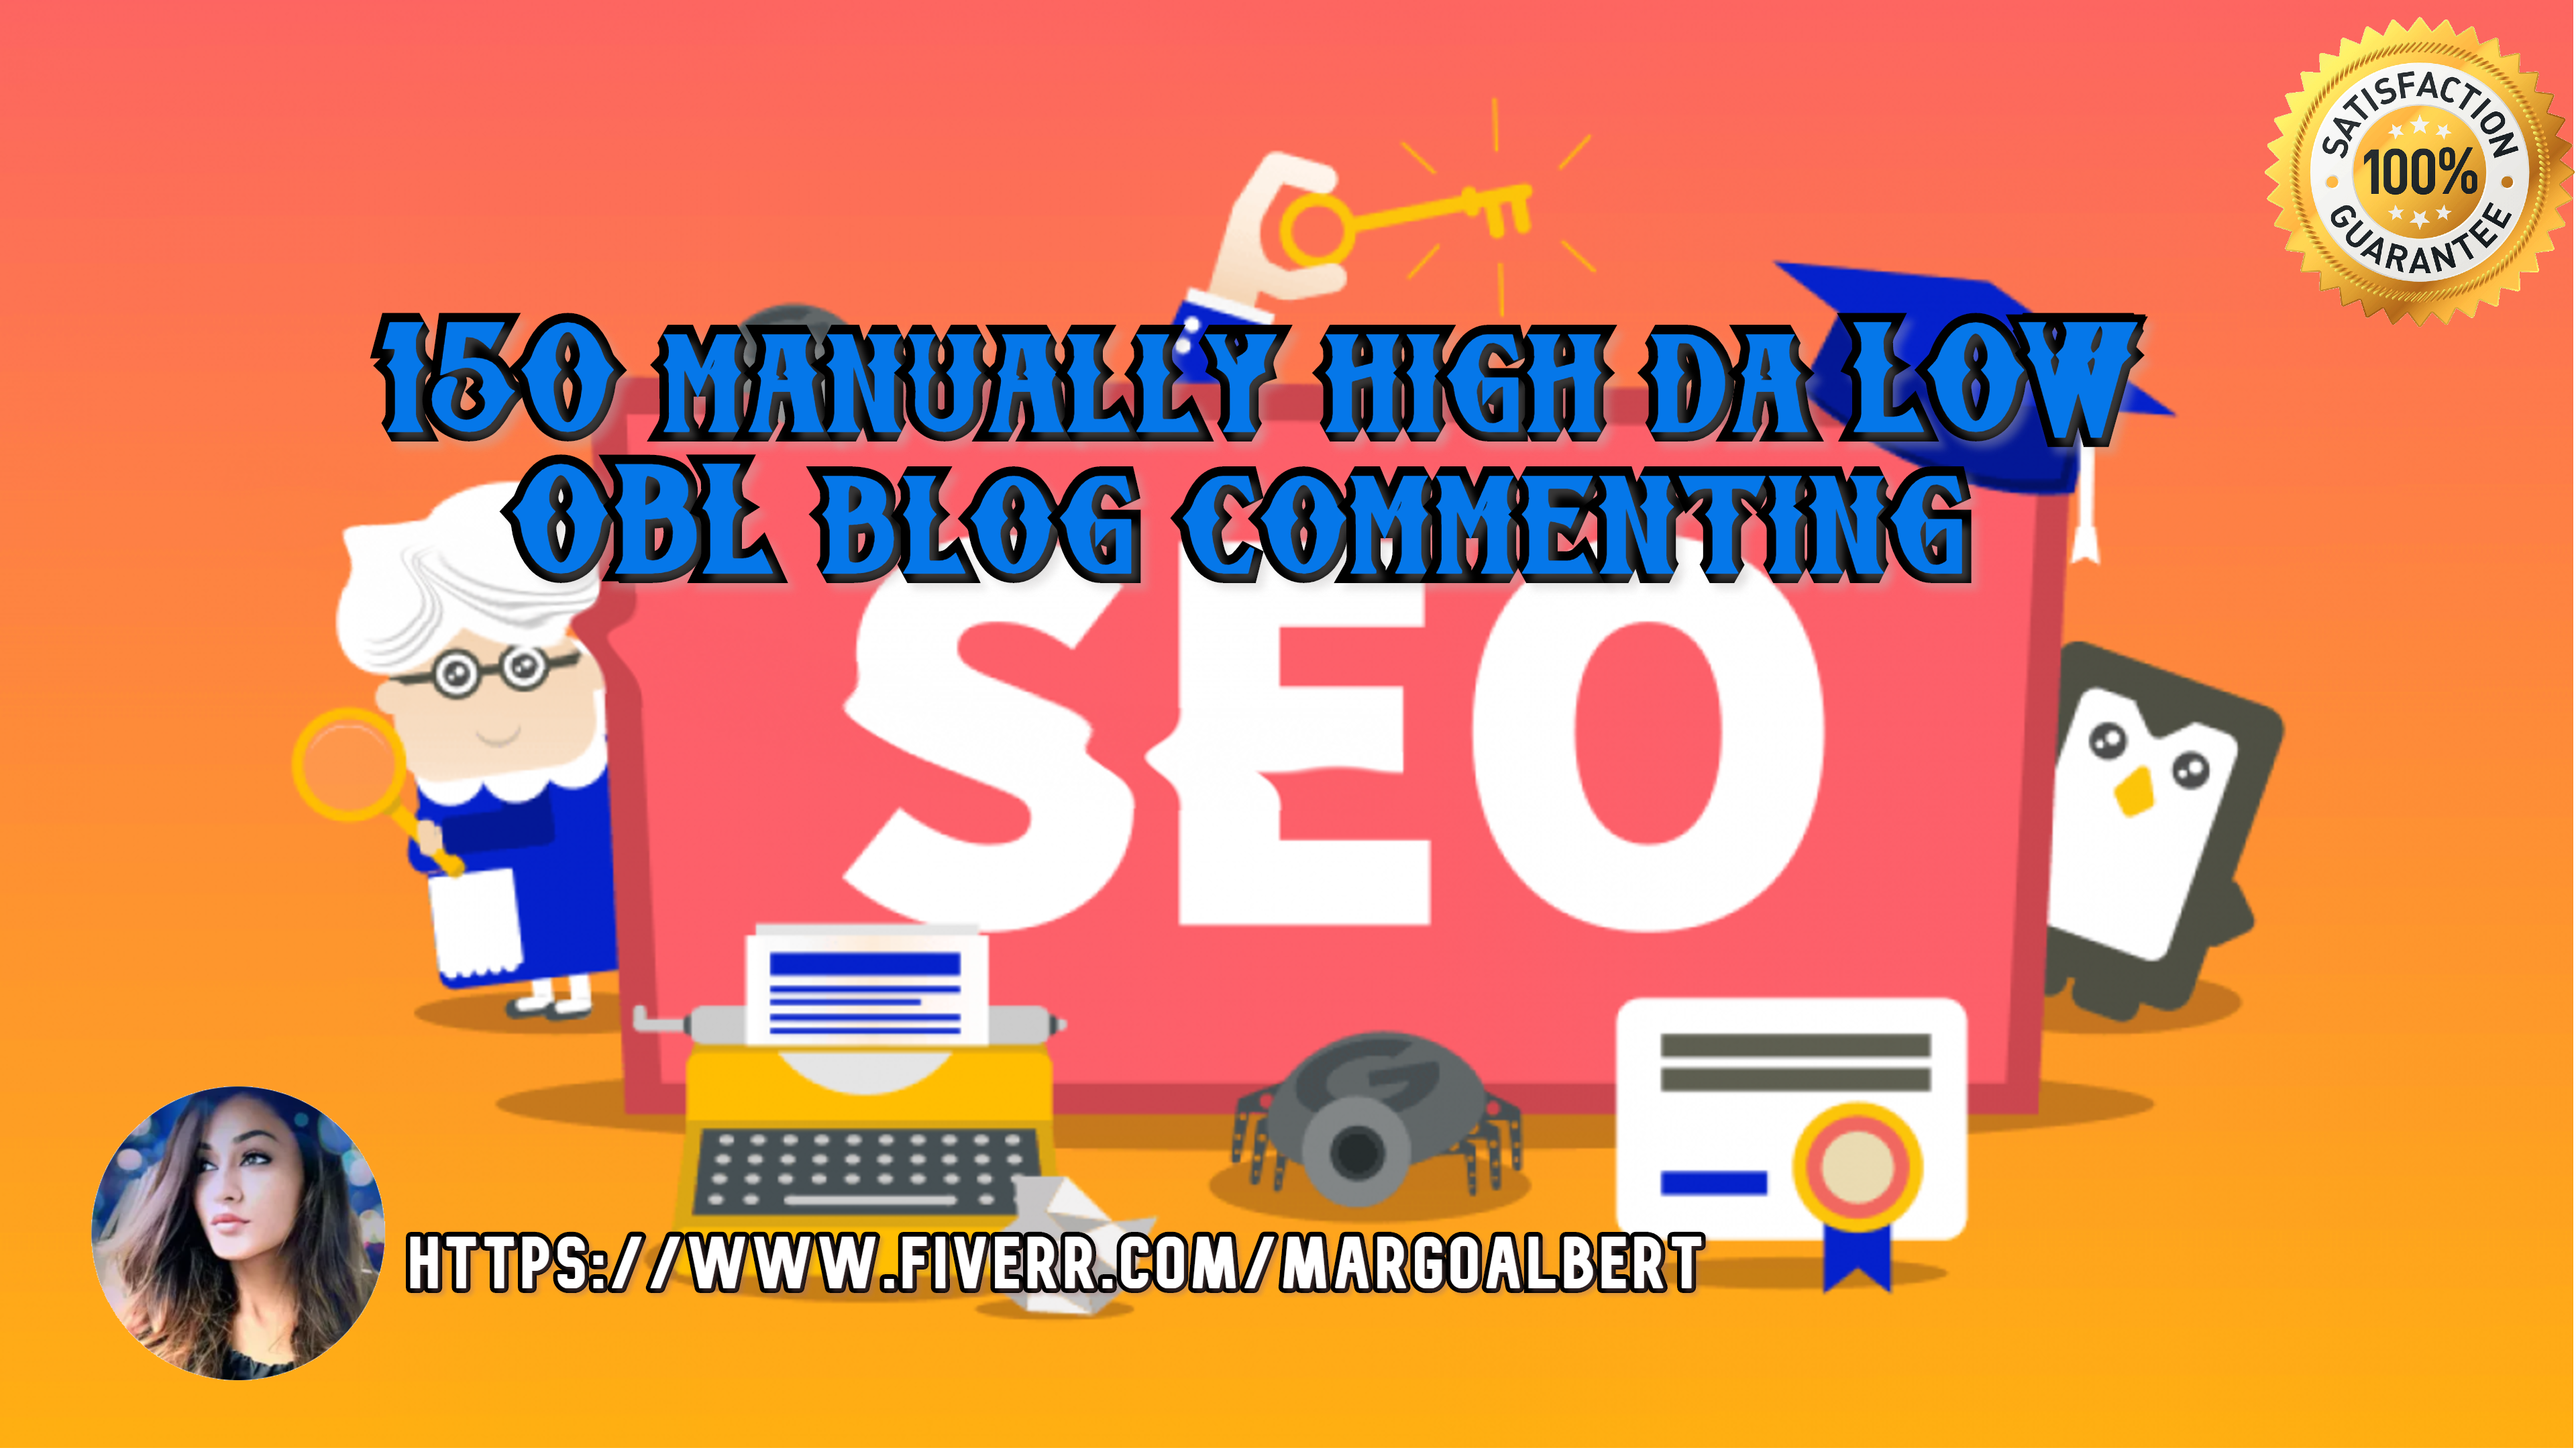 I will do 150 manually high da low OBL blog comment